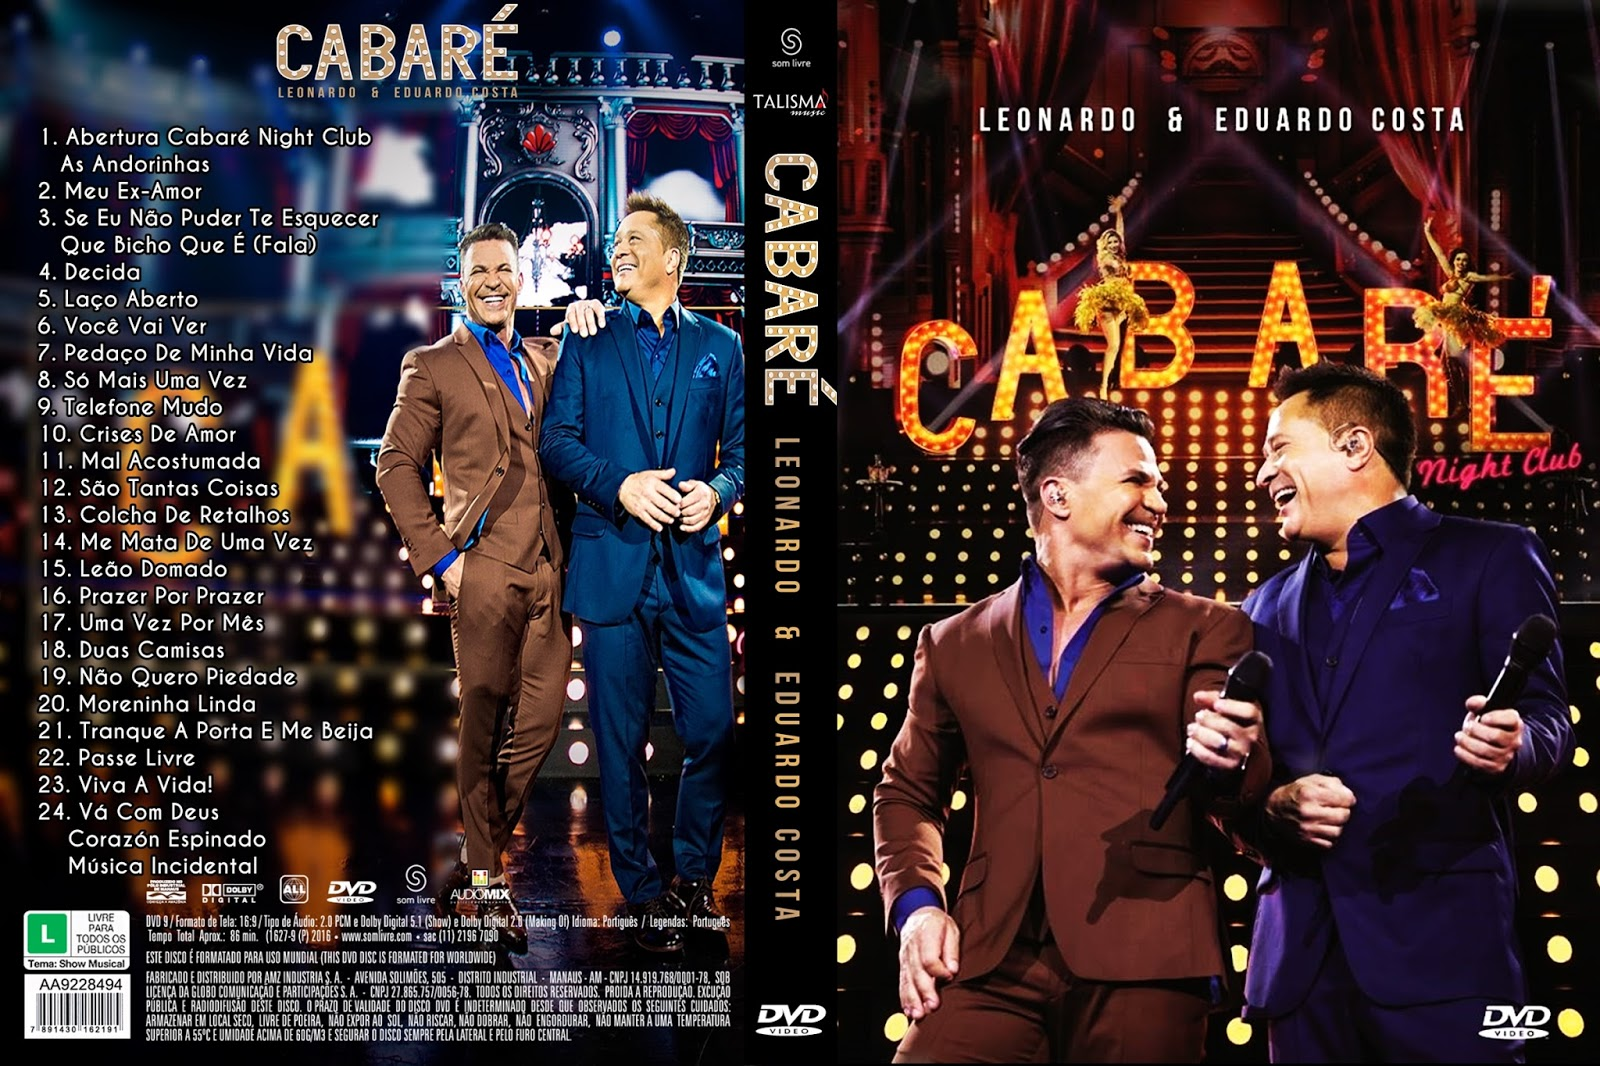 Download Leonardo & Eduardo Costa Cabaré 2 Night Club DVD-R